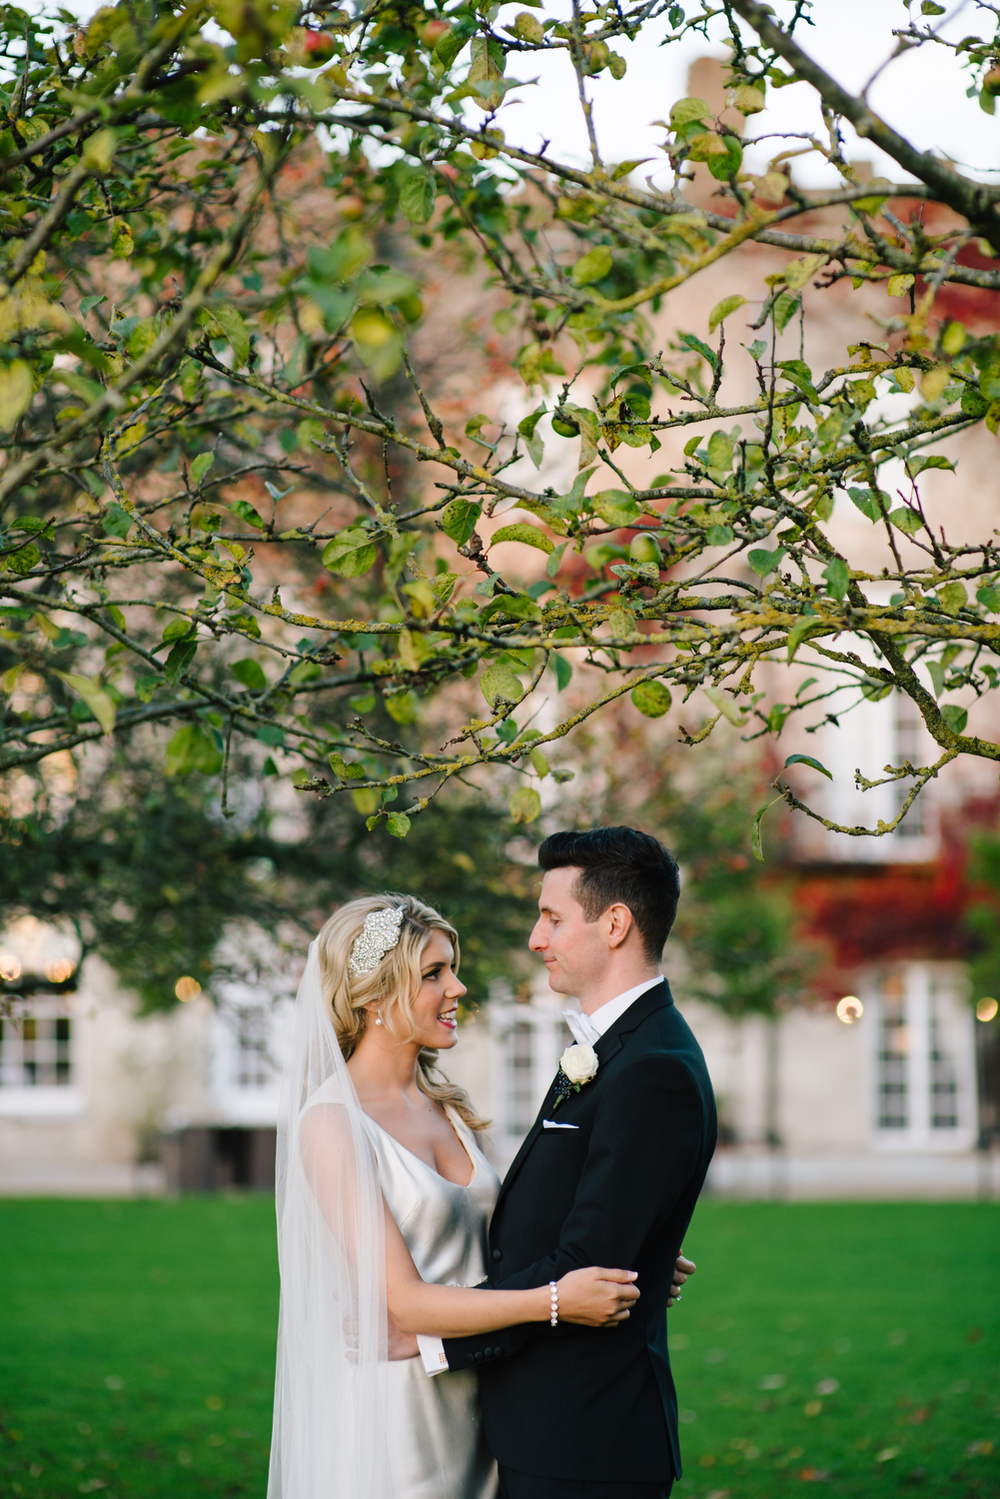 Bellingham Castle Wedding - Bradley Quinn Photography 041.JPG